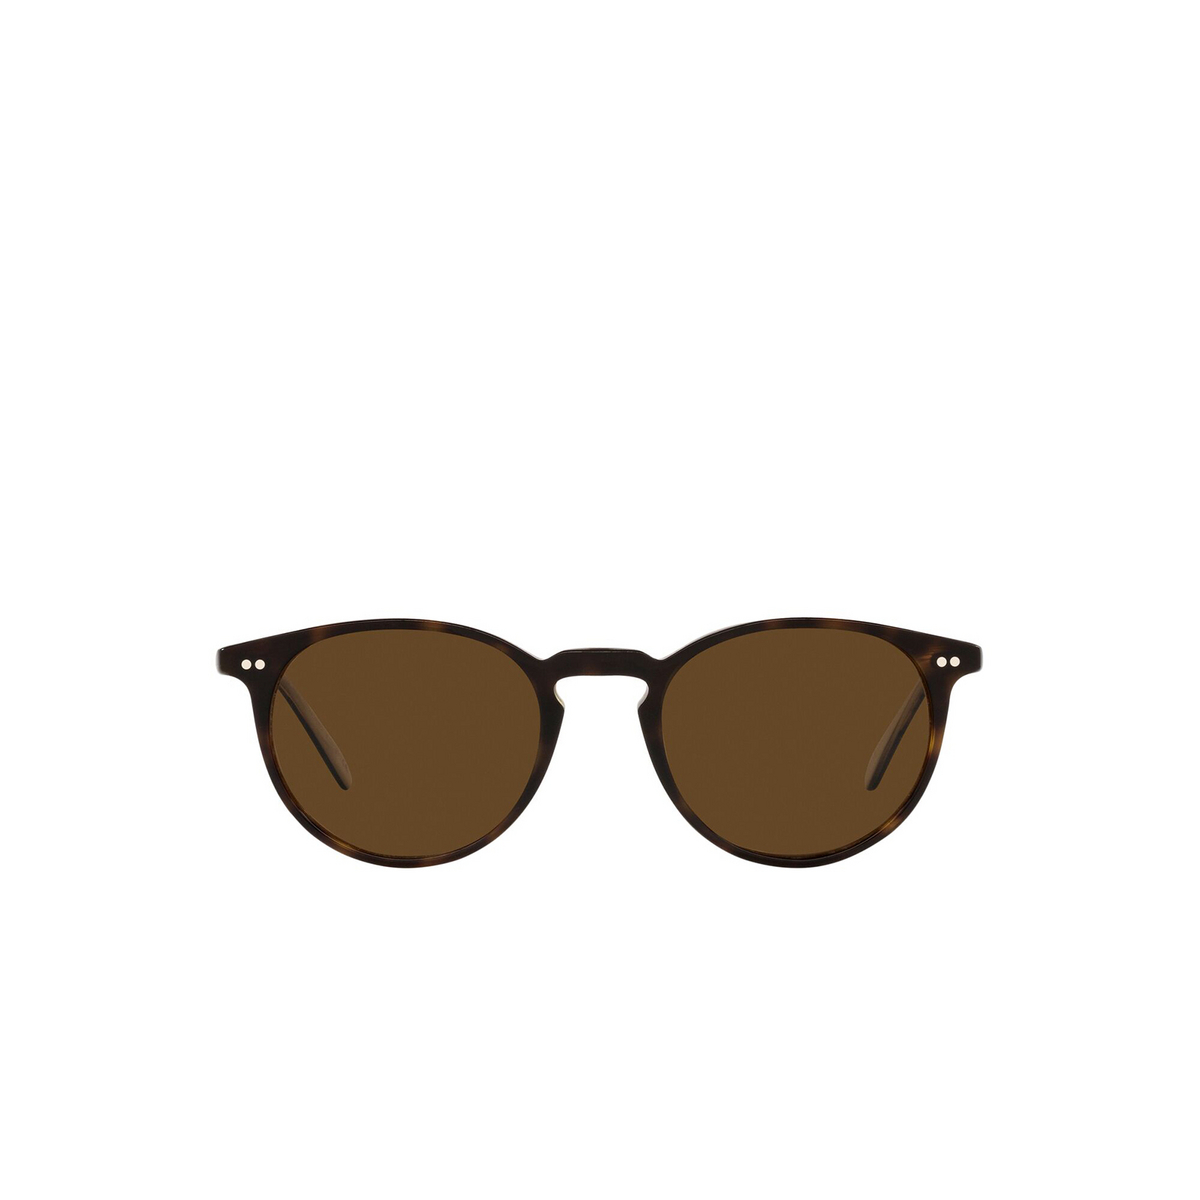 Oliver Peoples® Round Sunglasses: Riley Sun OV5004SU color 362 / Horn 166657 - front view.